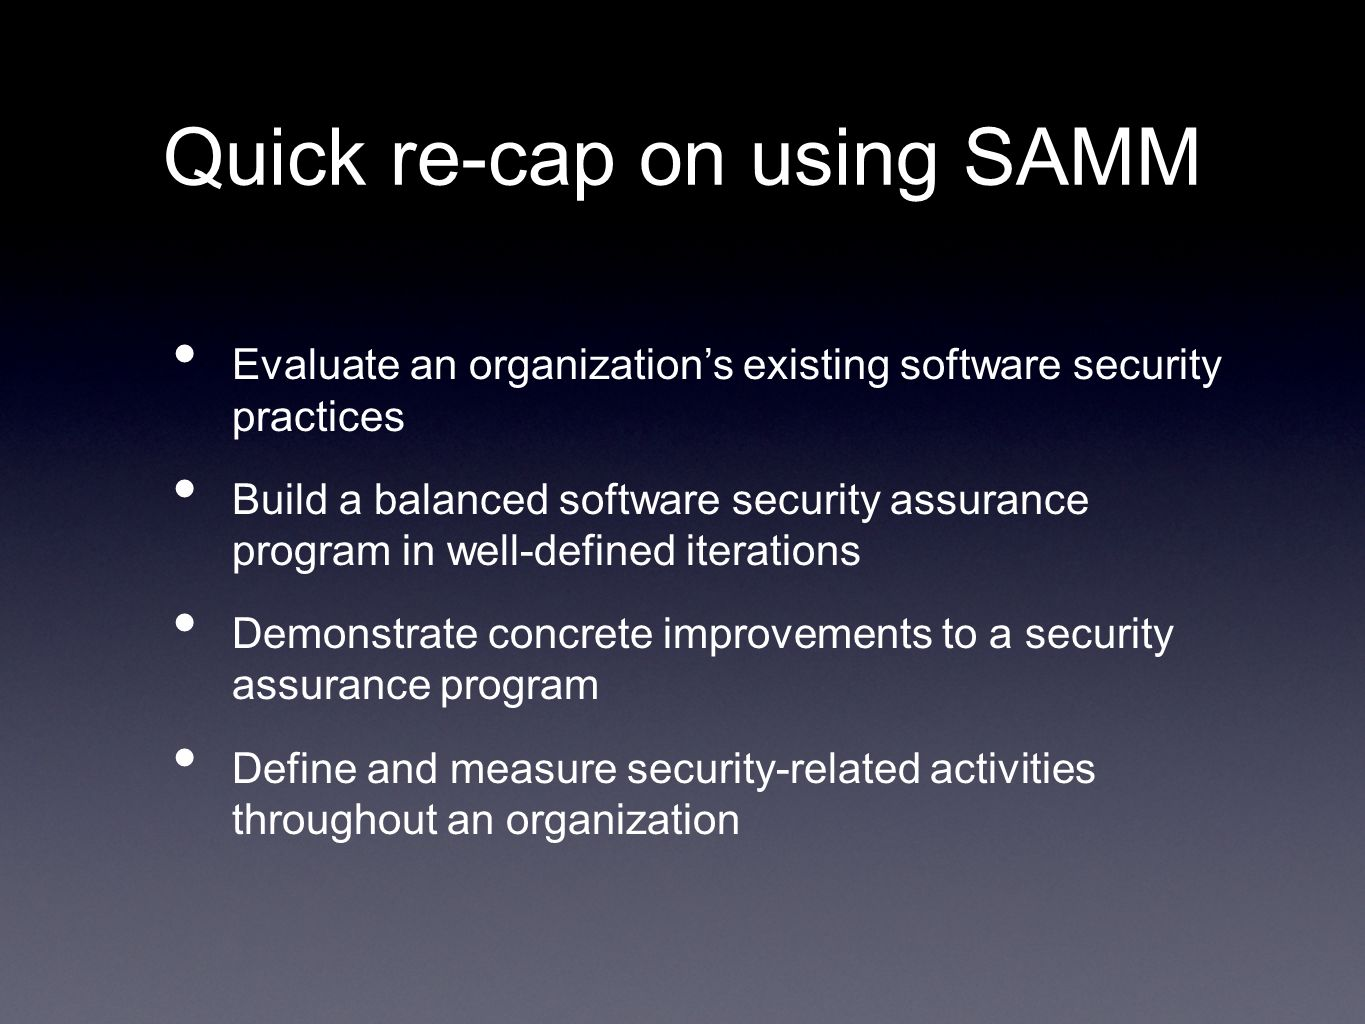 Quick re-cap on using SAMM